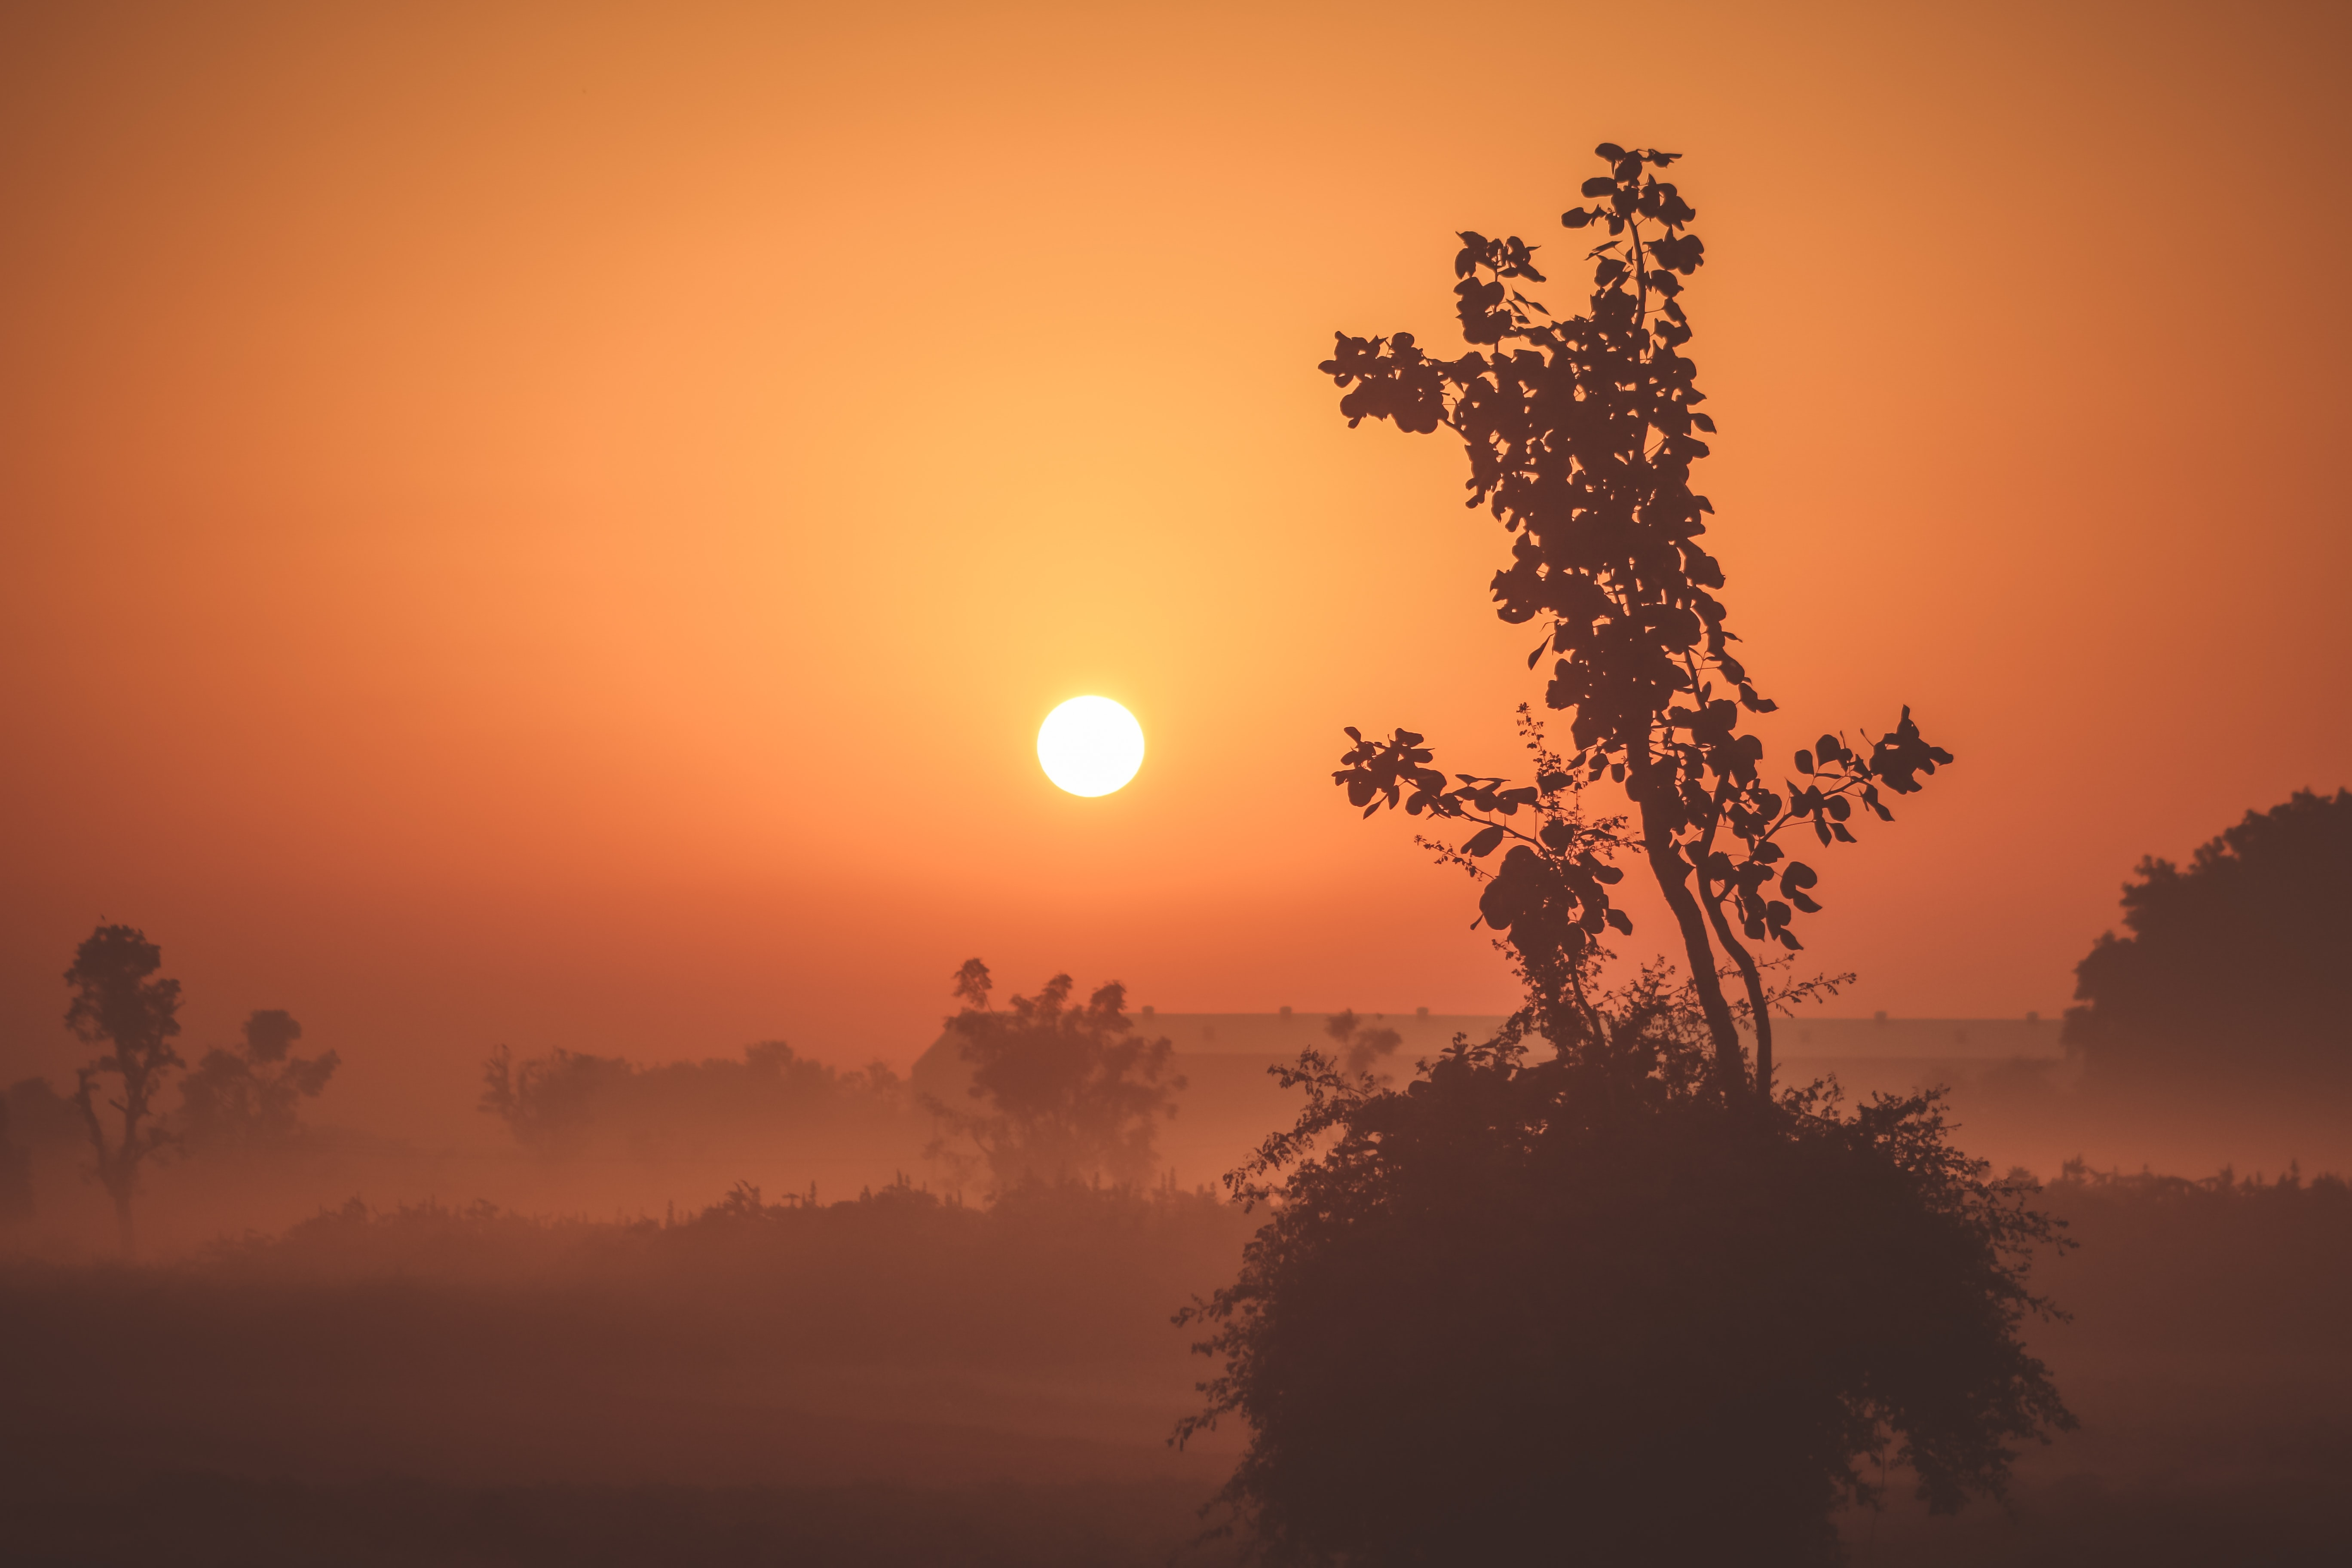 Silhouette lowland bush and tree landscape at sunrise-or-sunset and a bright orange sky